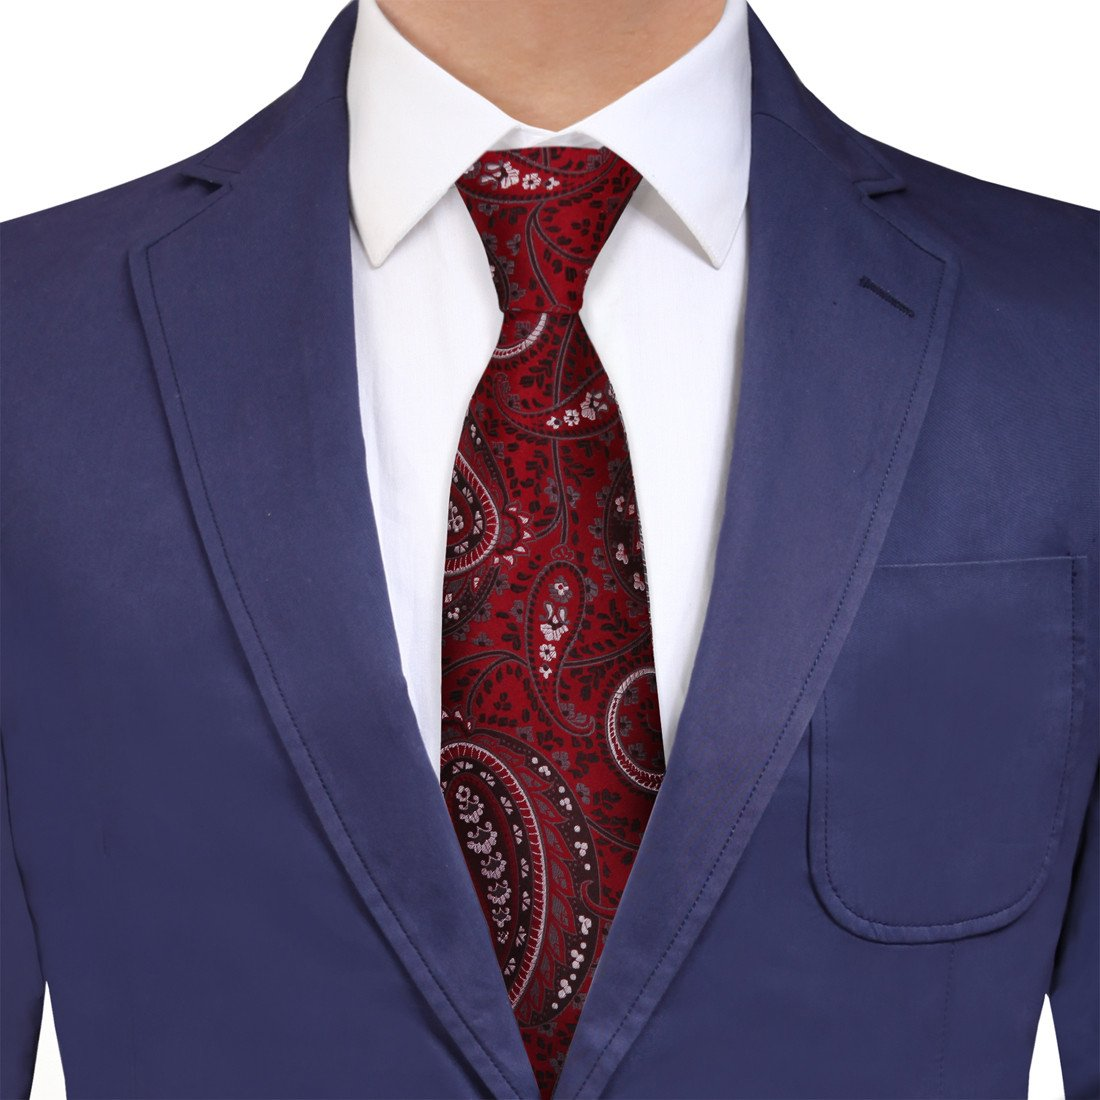 YAQB0033 Red Black Paisley Discount For Business Woven Jacquard Silk Tie Gift Idea For Waistcoat Neck Tie By Y&G